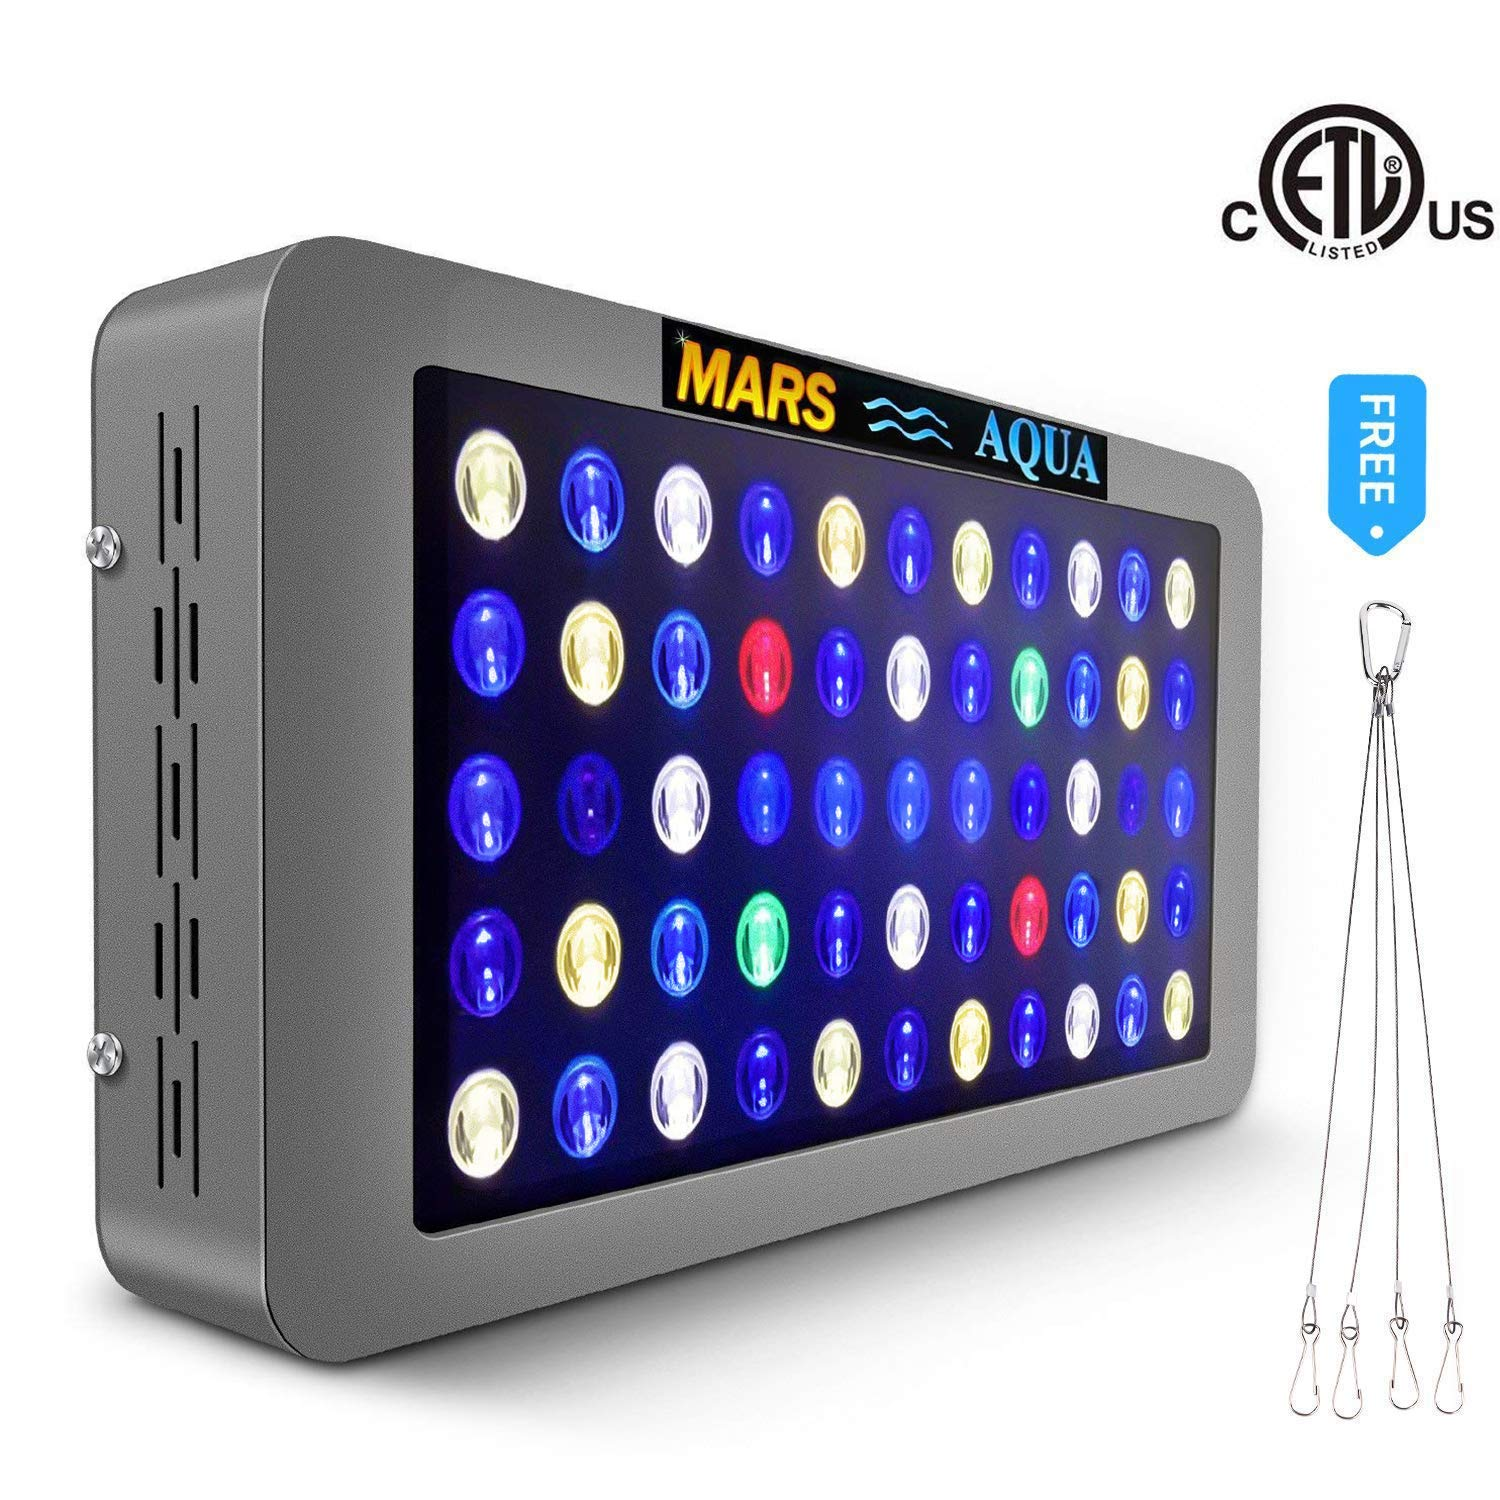 MarsAqua Dimmable 165W 300W LED Aquarium Light 30 Gallon 55 Gallon Coral Reef Light Full Spectrum for Fish Freshwater and Saltwater Coral Tank Blue and White 6500K LPS/SPS with Daisy Chain Multifuncti by MARS AQUA